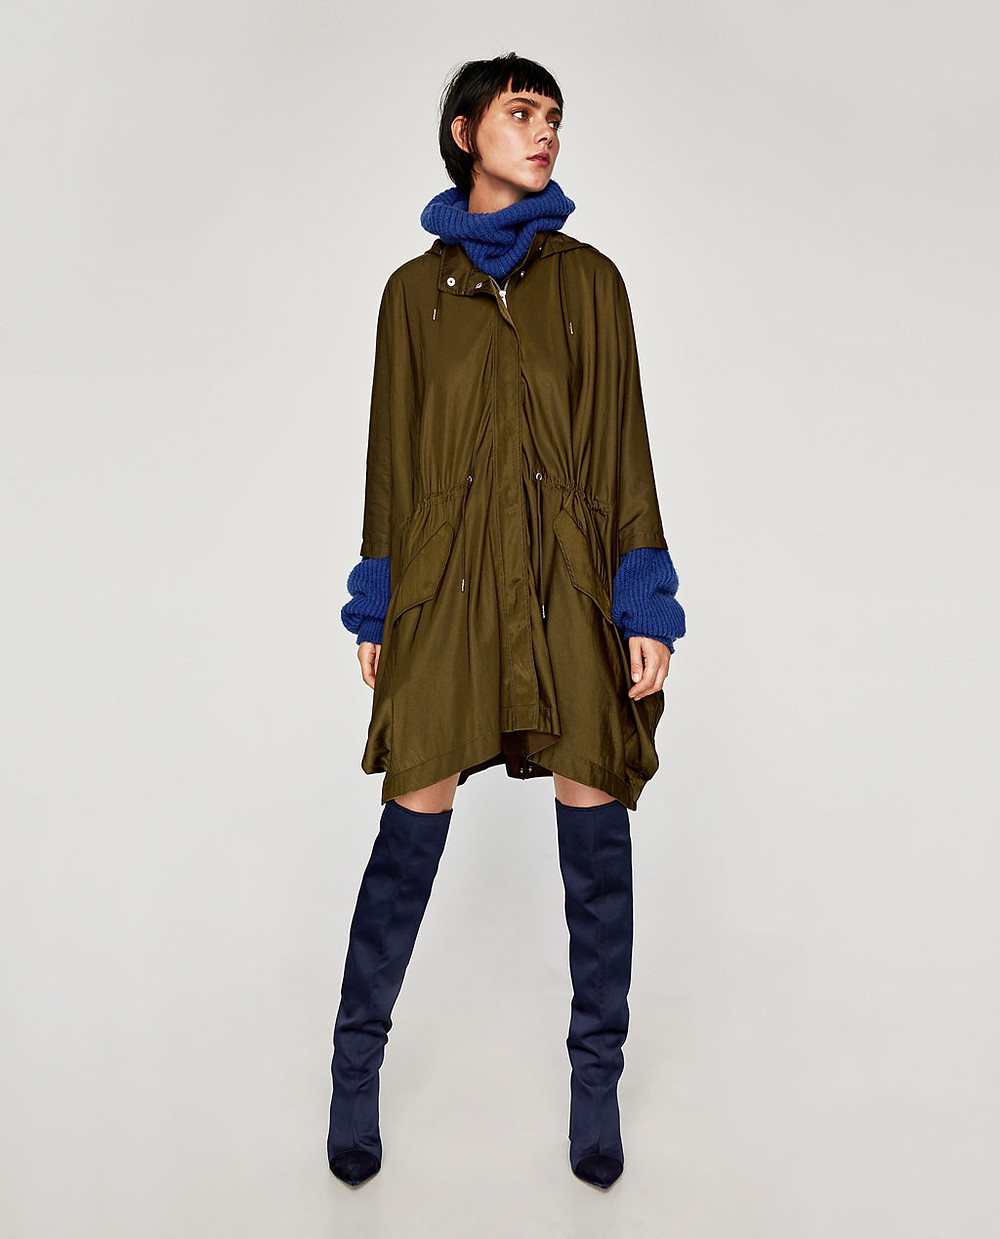 Zara oversized Cape $119